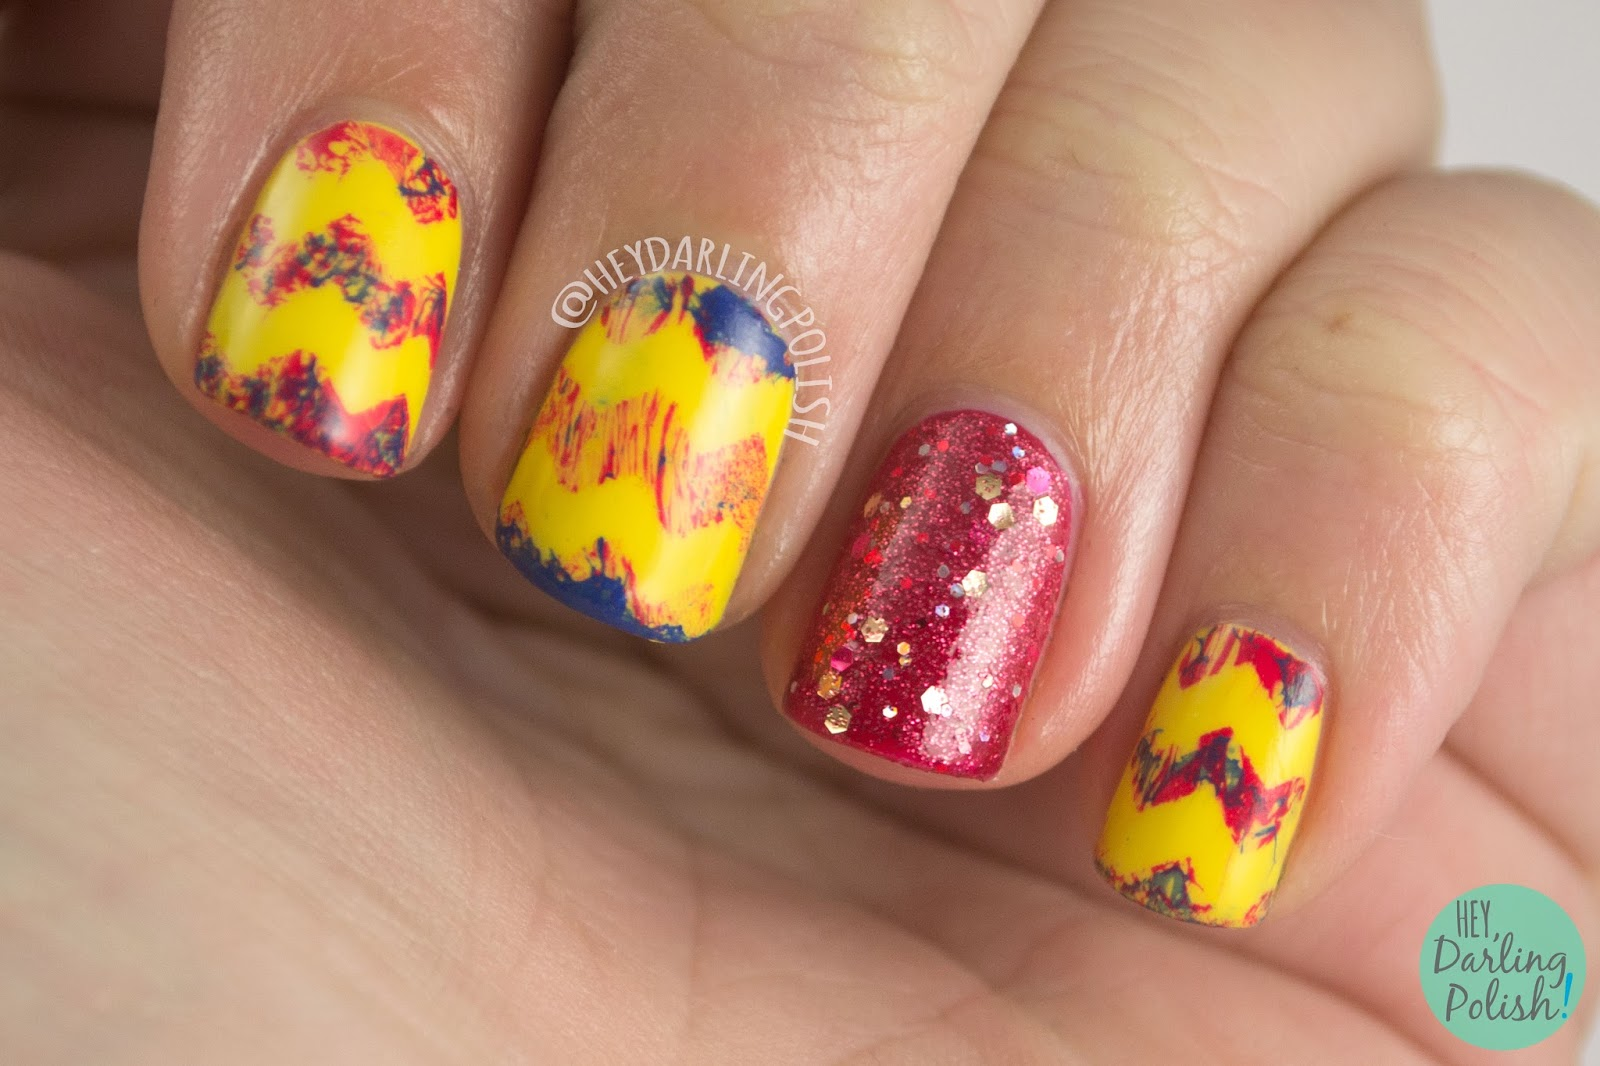 nails, nail art, nail polish, tri polish challenge, red, blue, yellow, chevron, hey darling polish